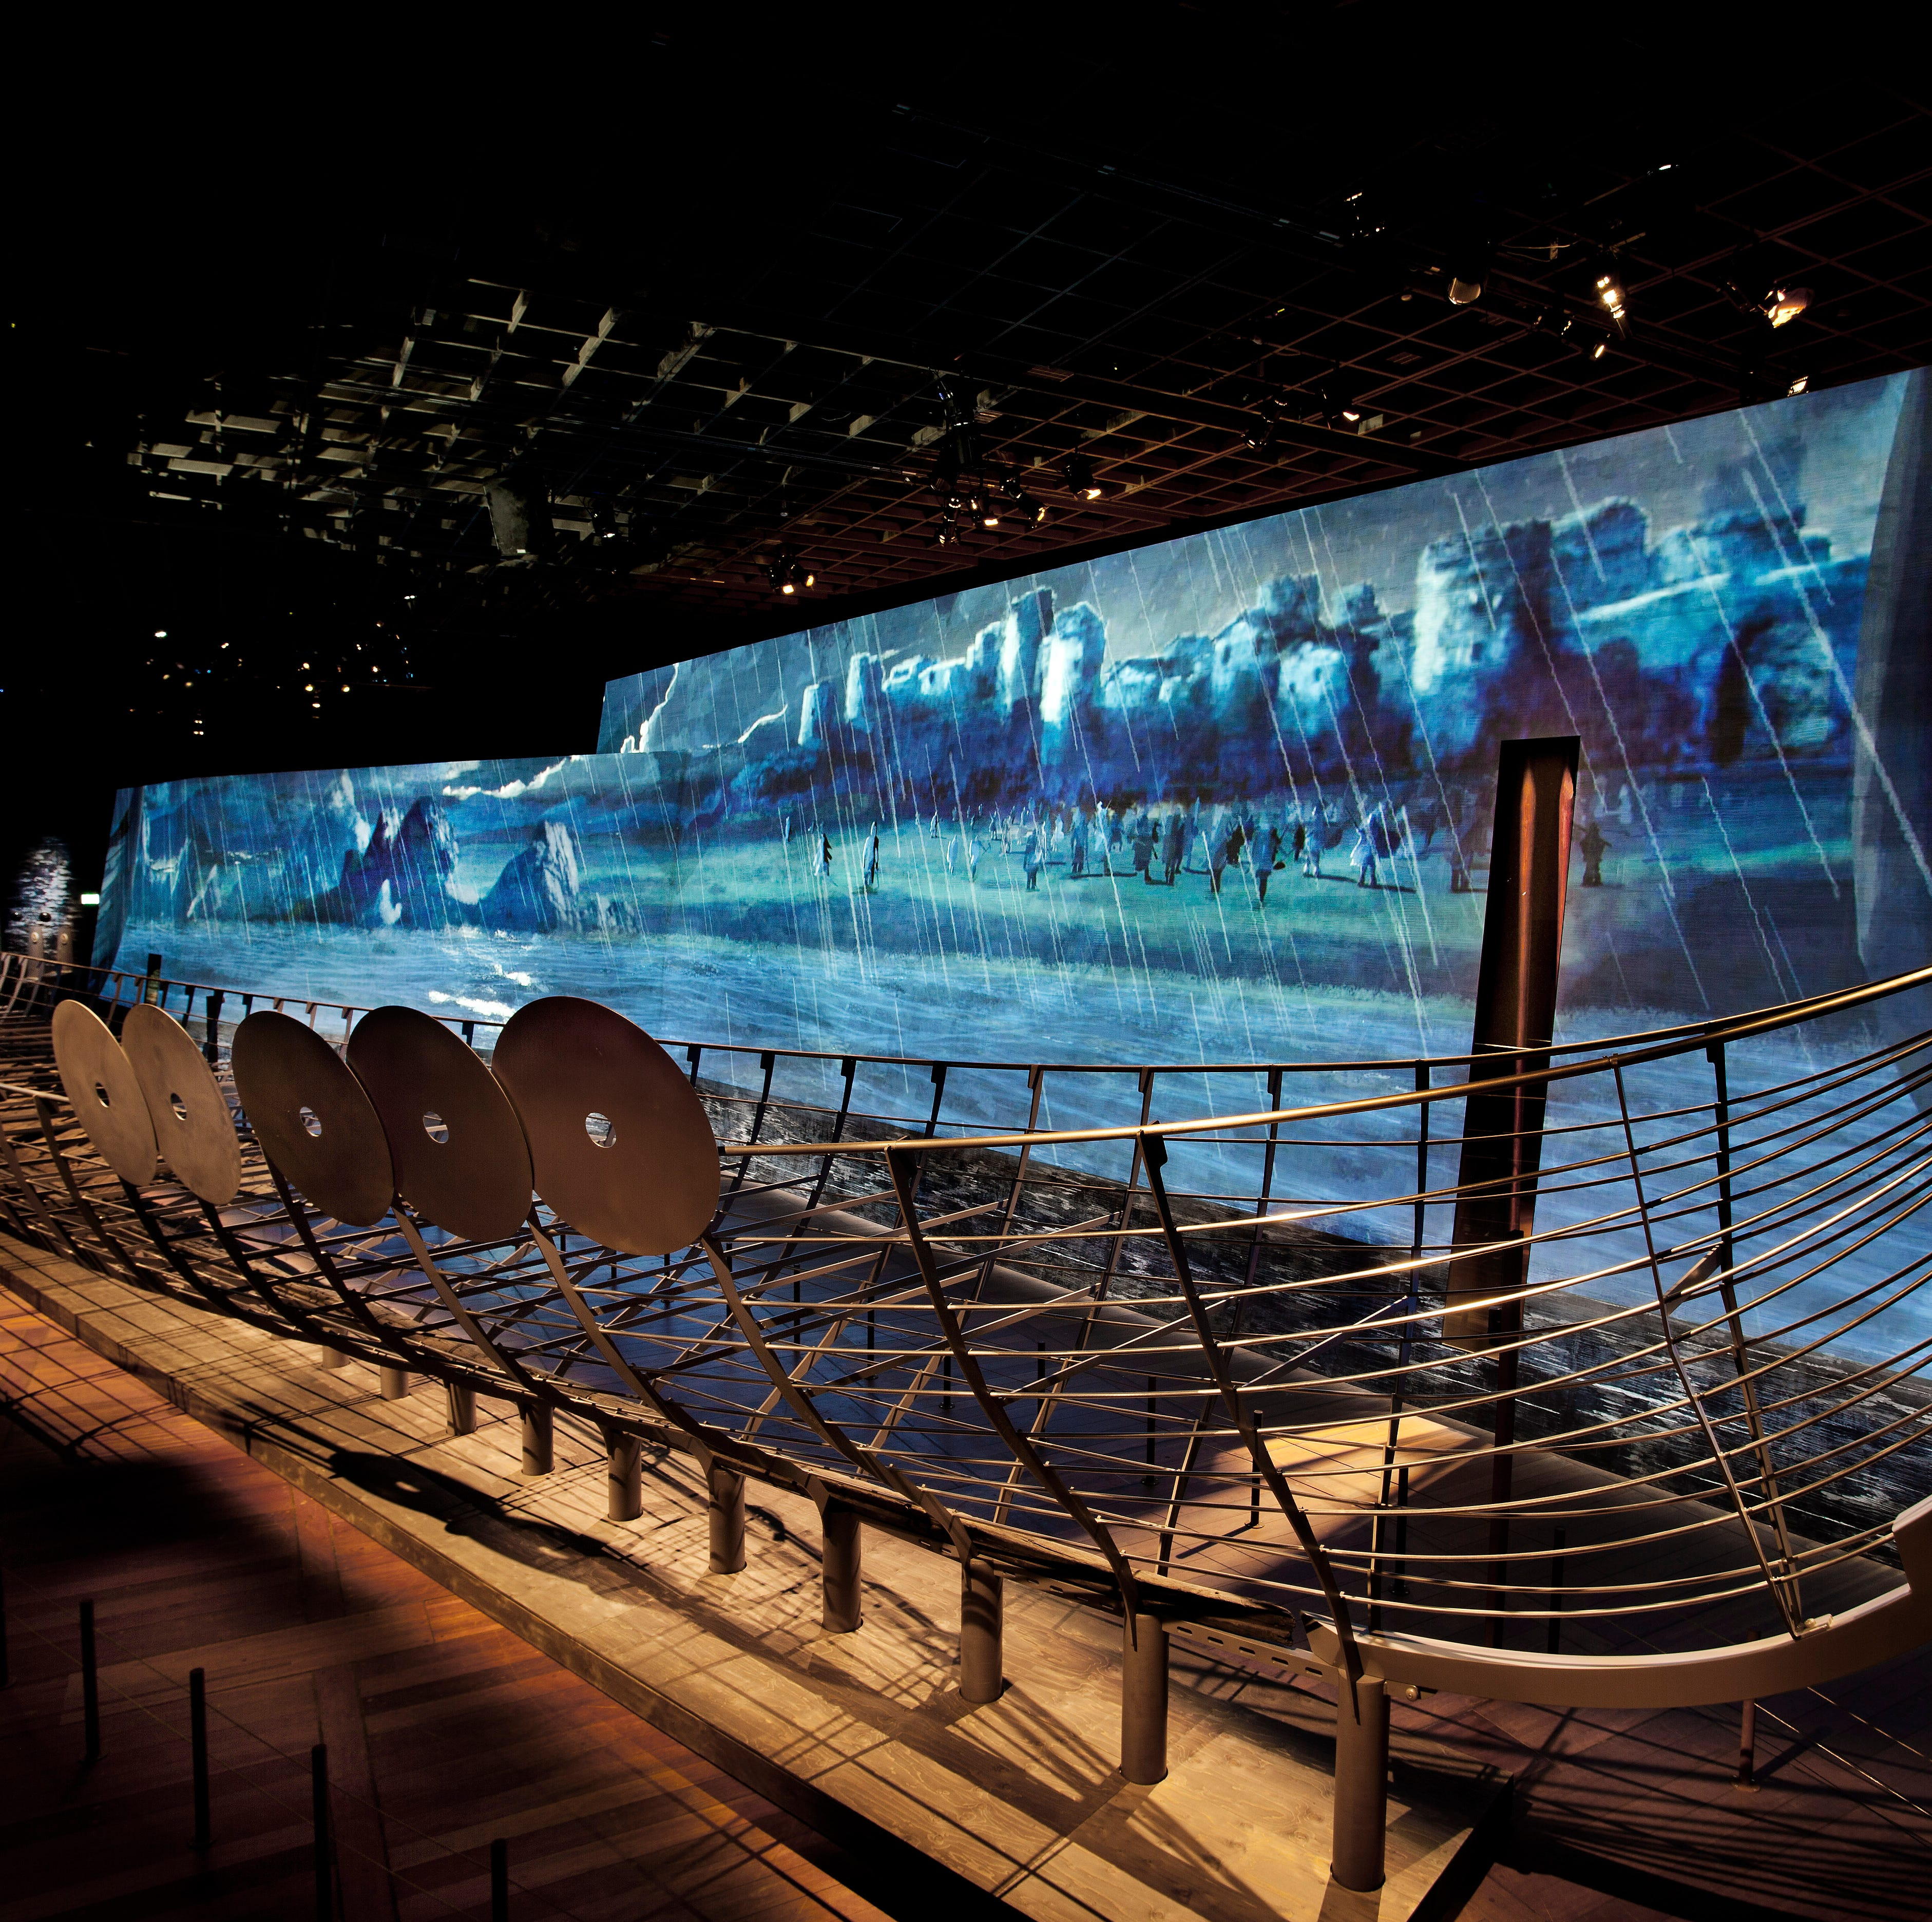 The Roskilde, a 122-foot Viking warship, is reconstructed as part of 'Vikings: Beyond the Legend' at the Franklin Institute.